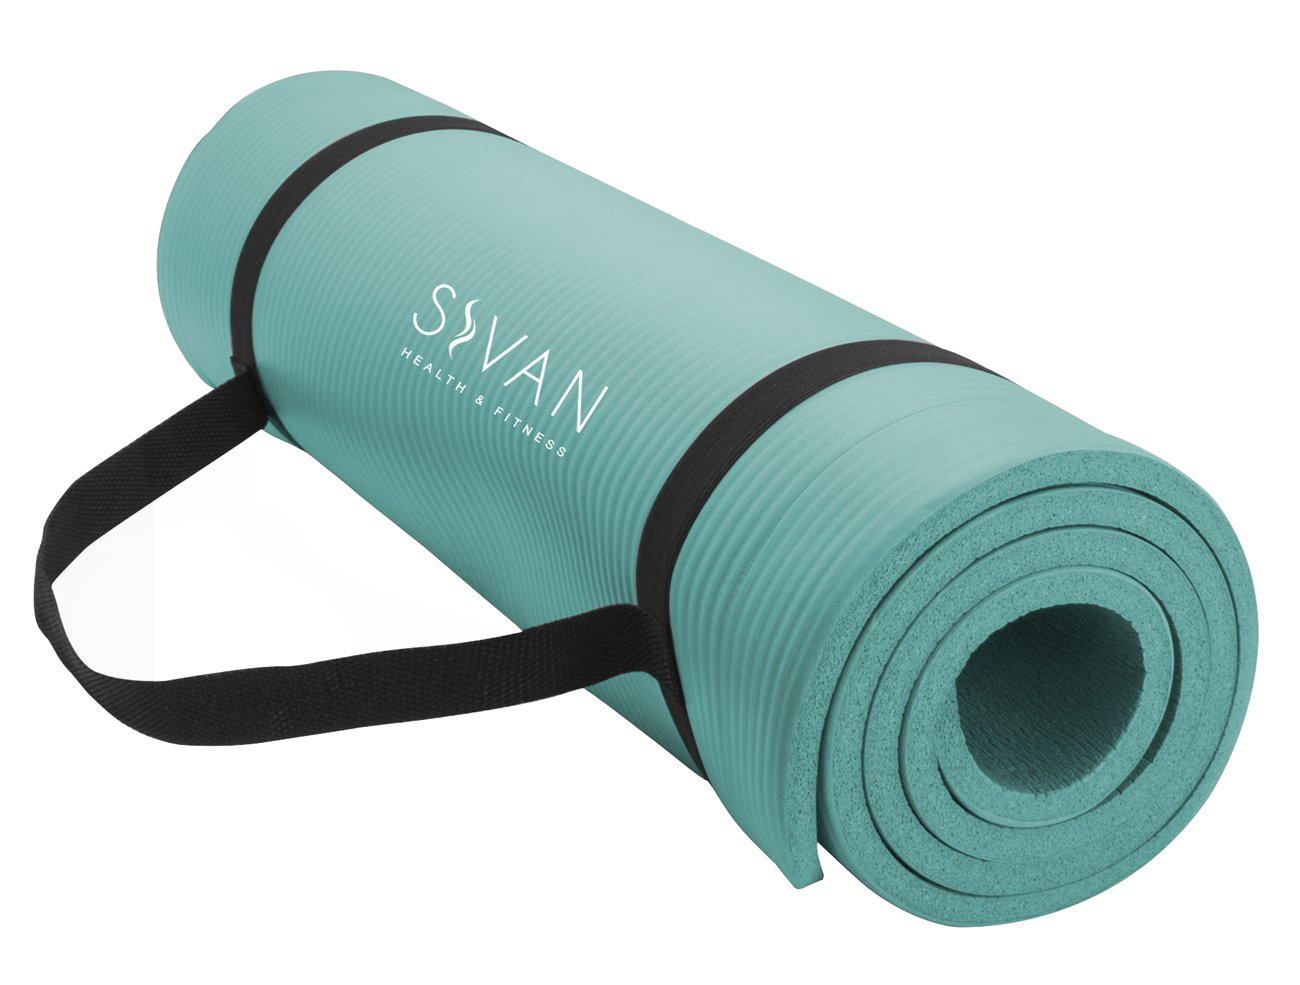 Sivan Health and Fitness 1 2-InchExtra Thick 71-Inch Long NBR Comfort Foam Yoga Mat for Exercise, Yoga, and Pilates